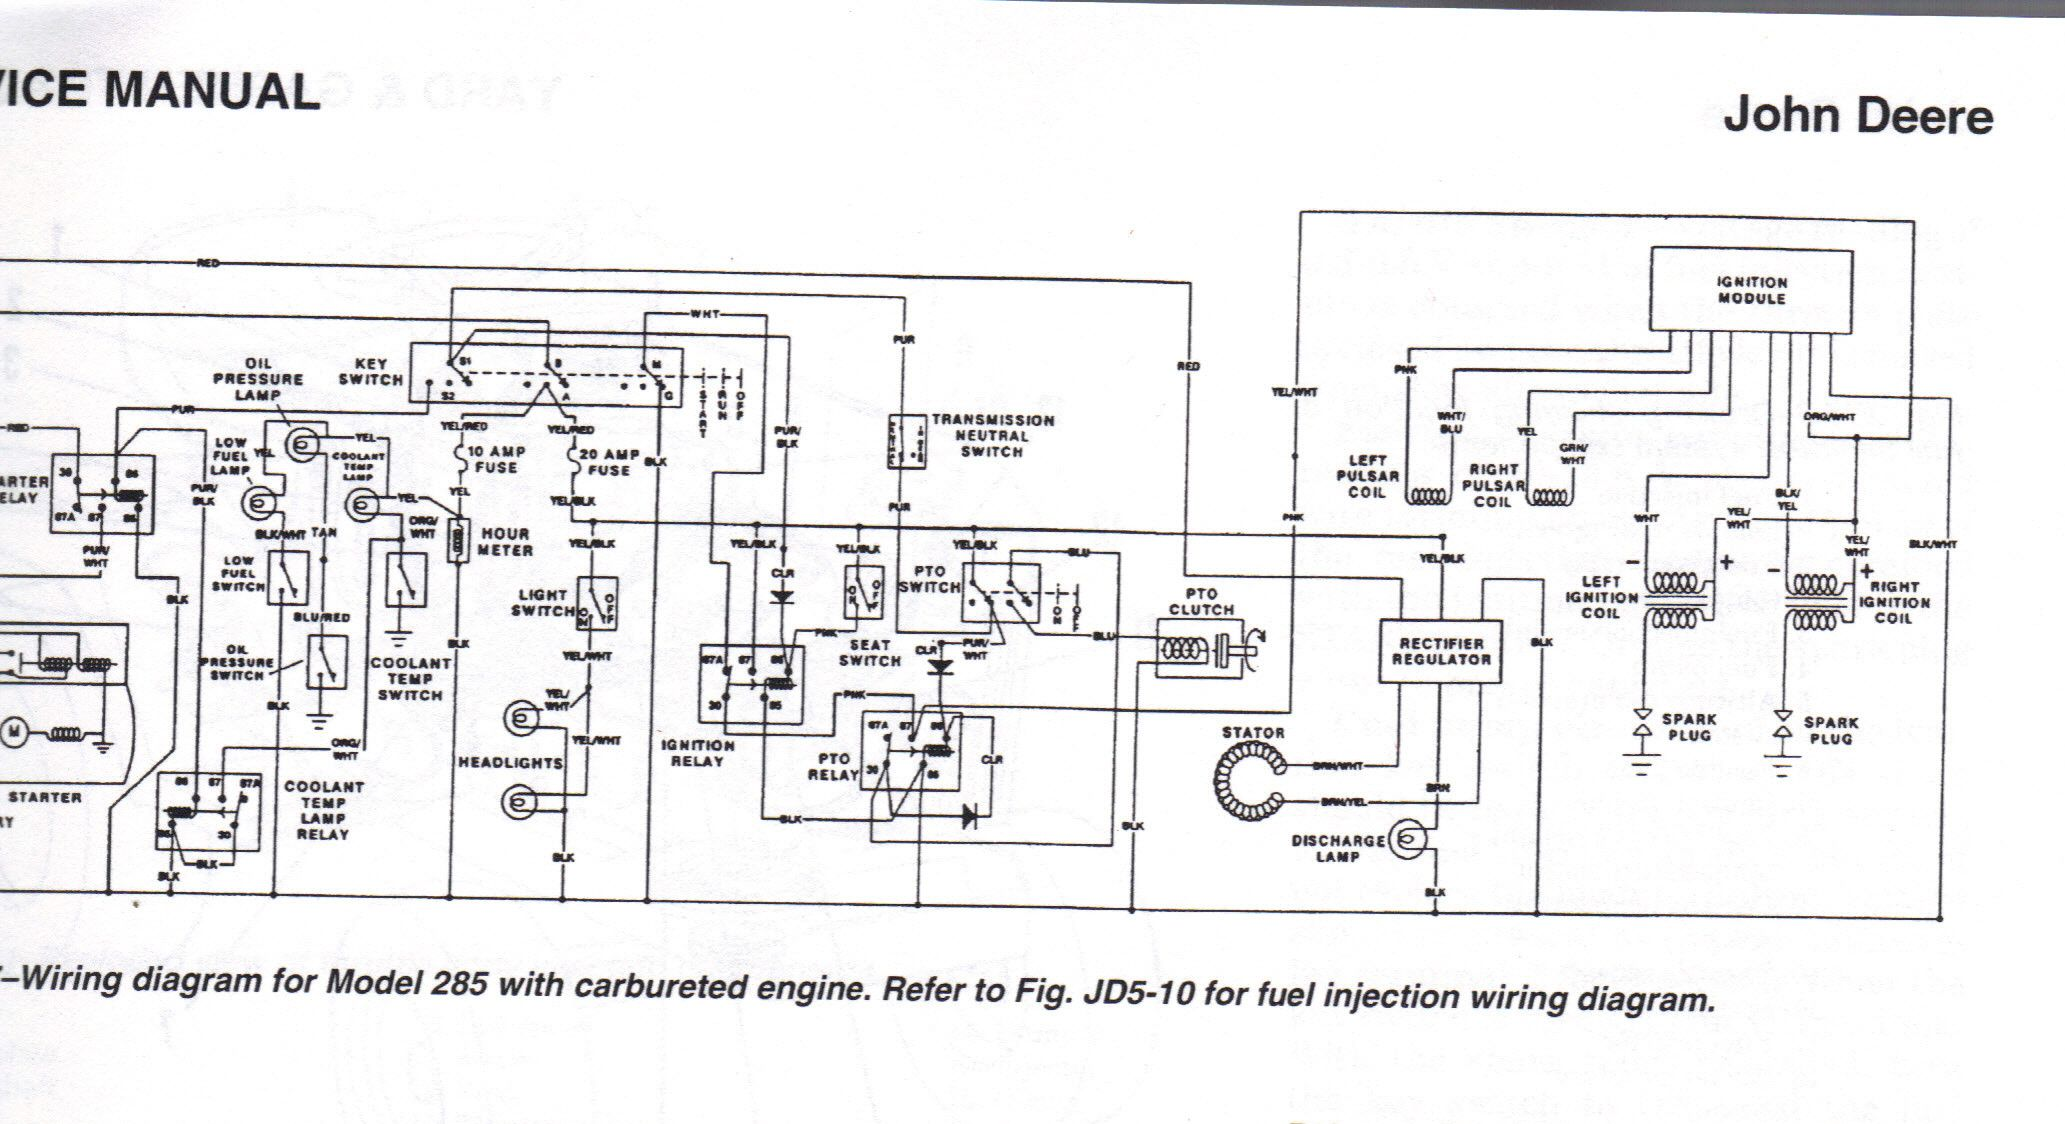 small resolution of john deere wiring diagram to service manual for model 285 with rhjohn deere wiring diagram to